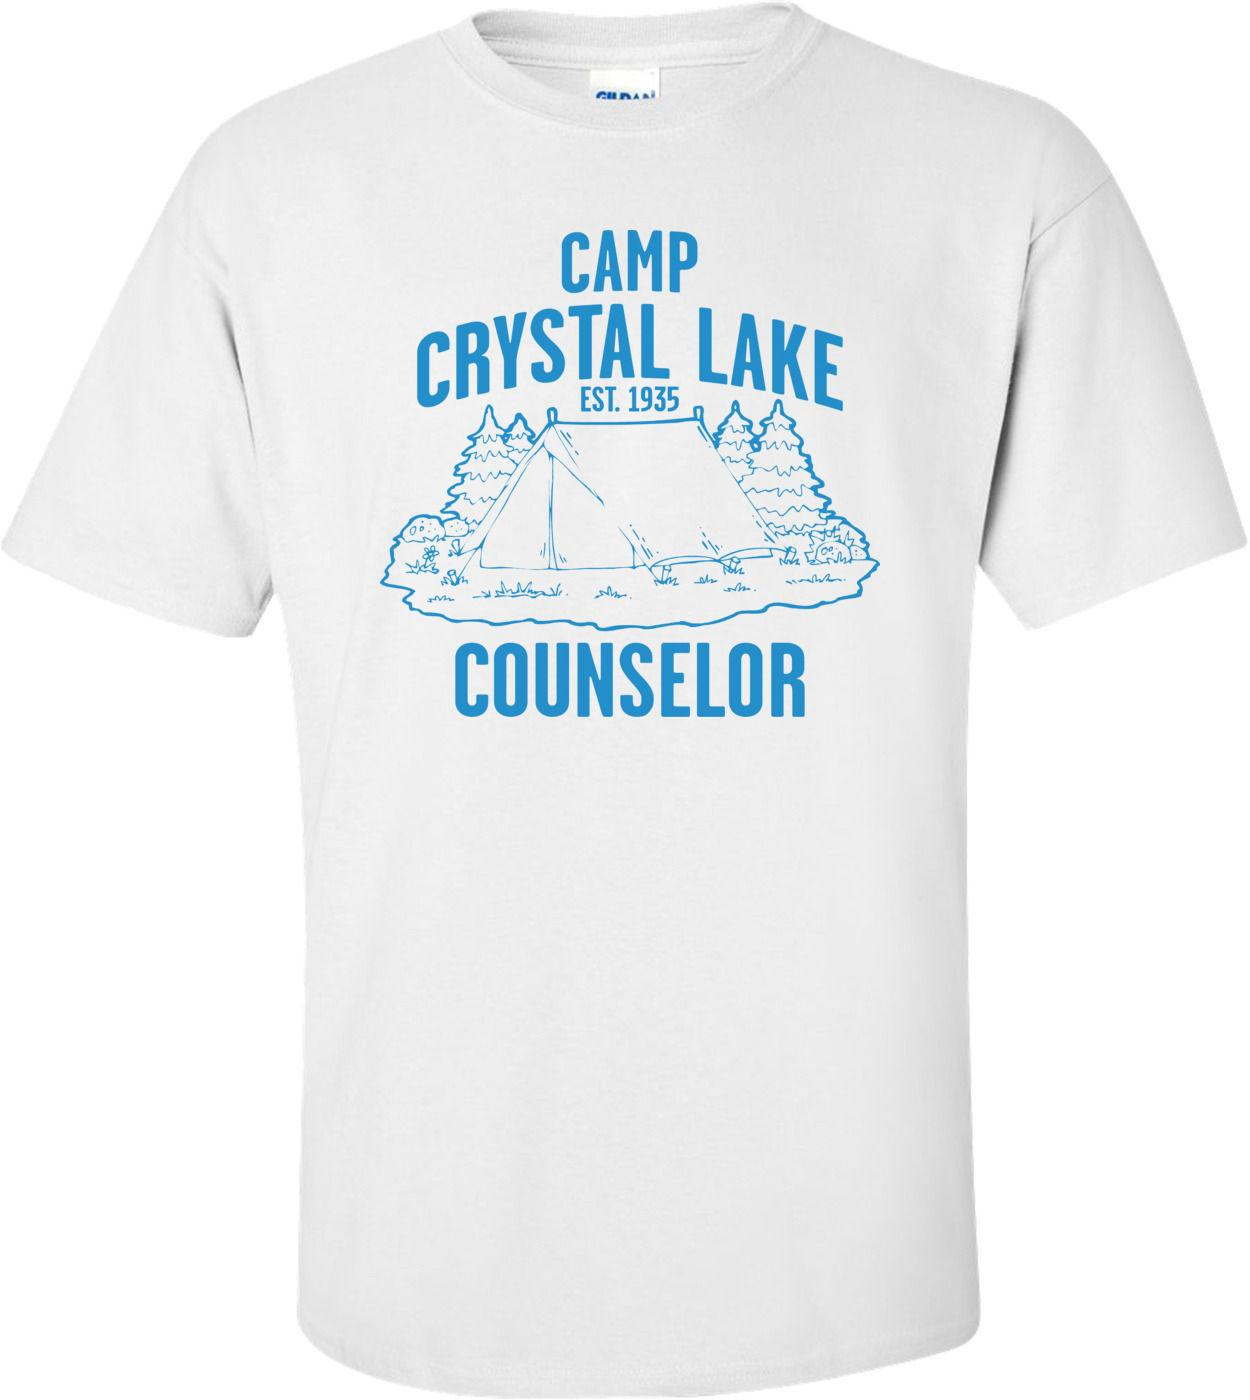 e41c3bf62bef Camp Crystal Lake Counselor T Shirt Summer Style Fashion Men T Shirts Top Tee  Summer New Men Cotton Print Round Neck Man Funky T Shirt Design T Shirt  Every ...